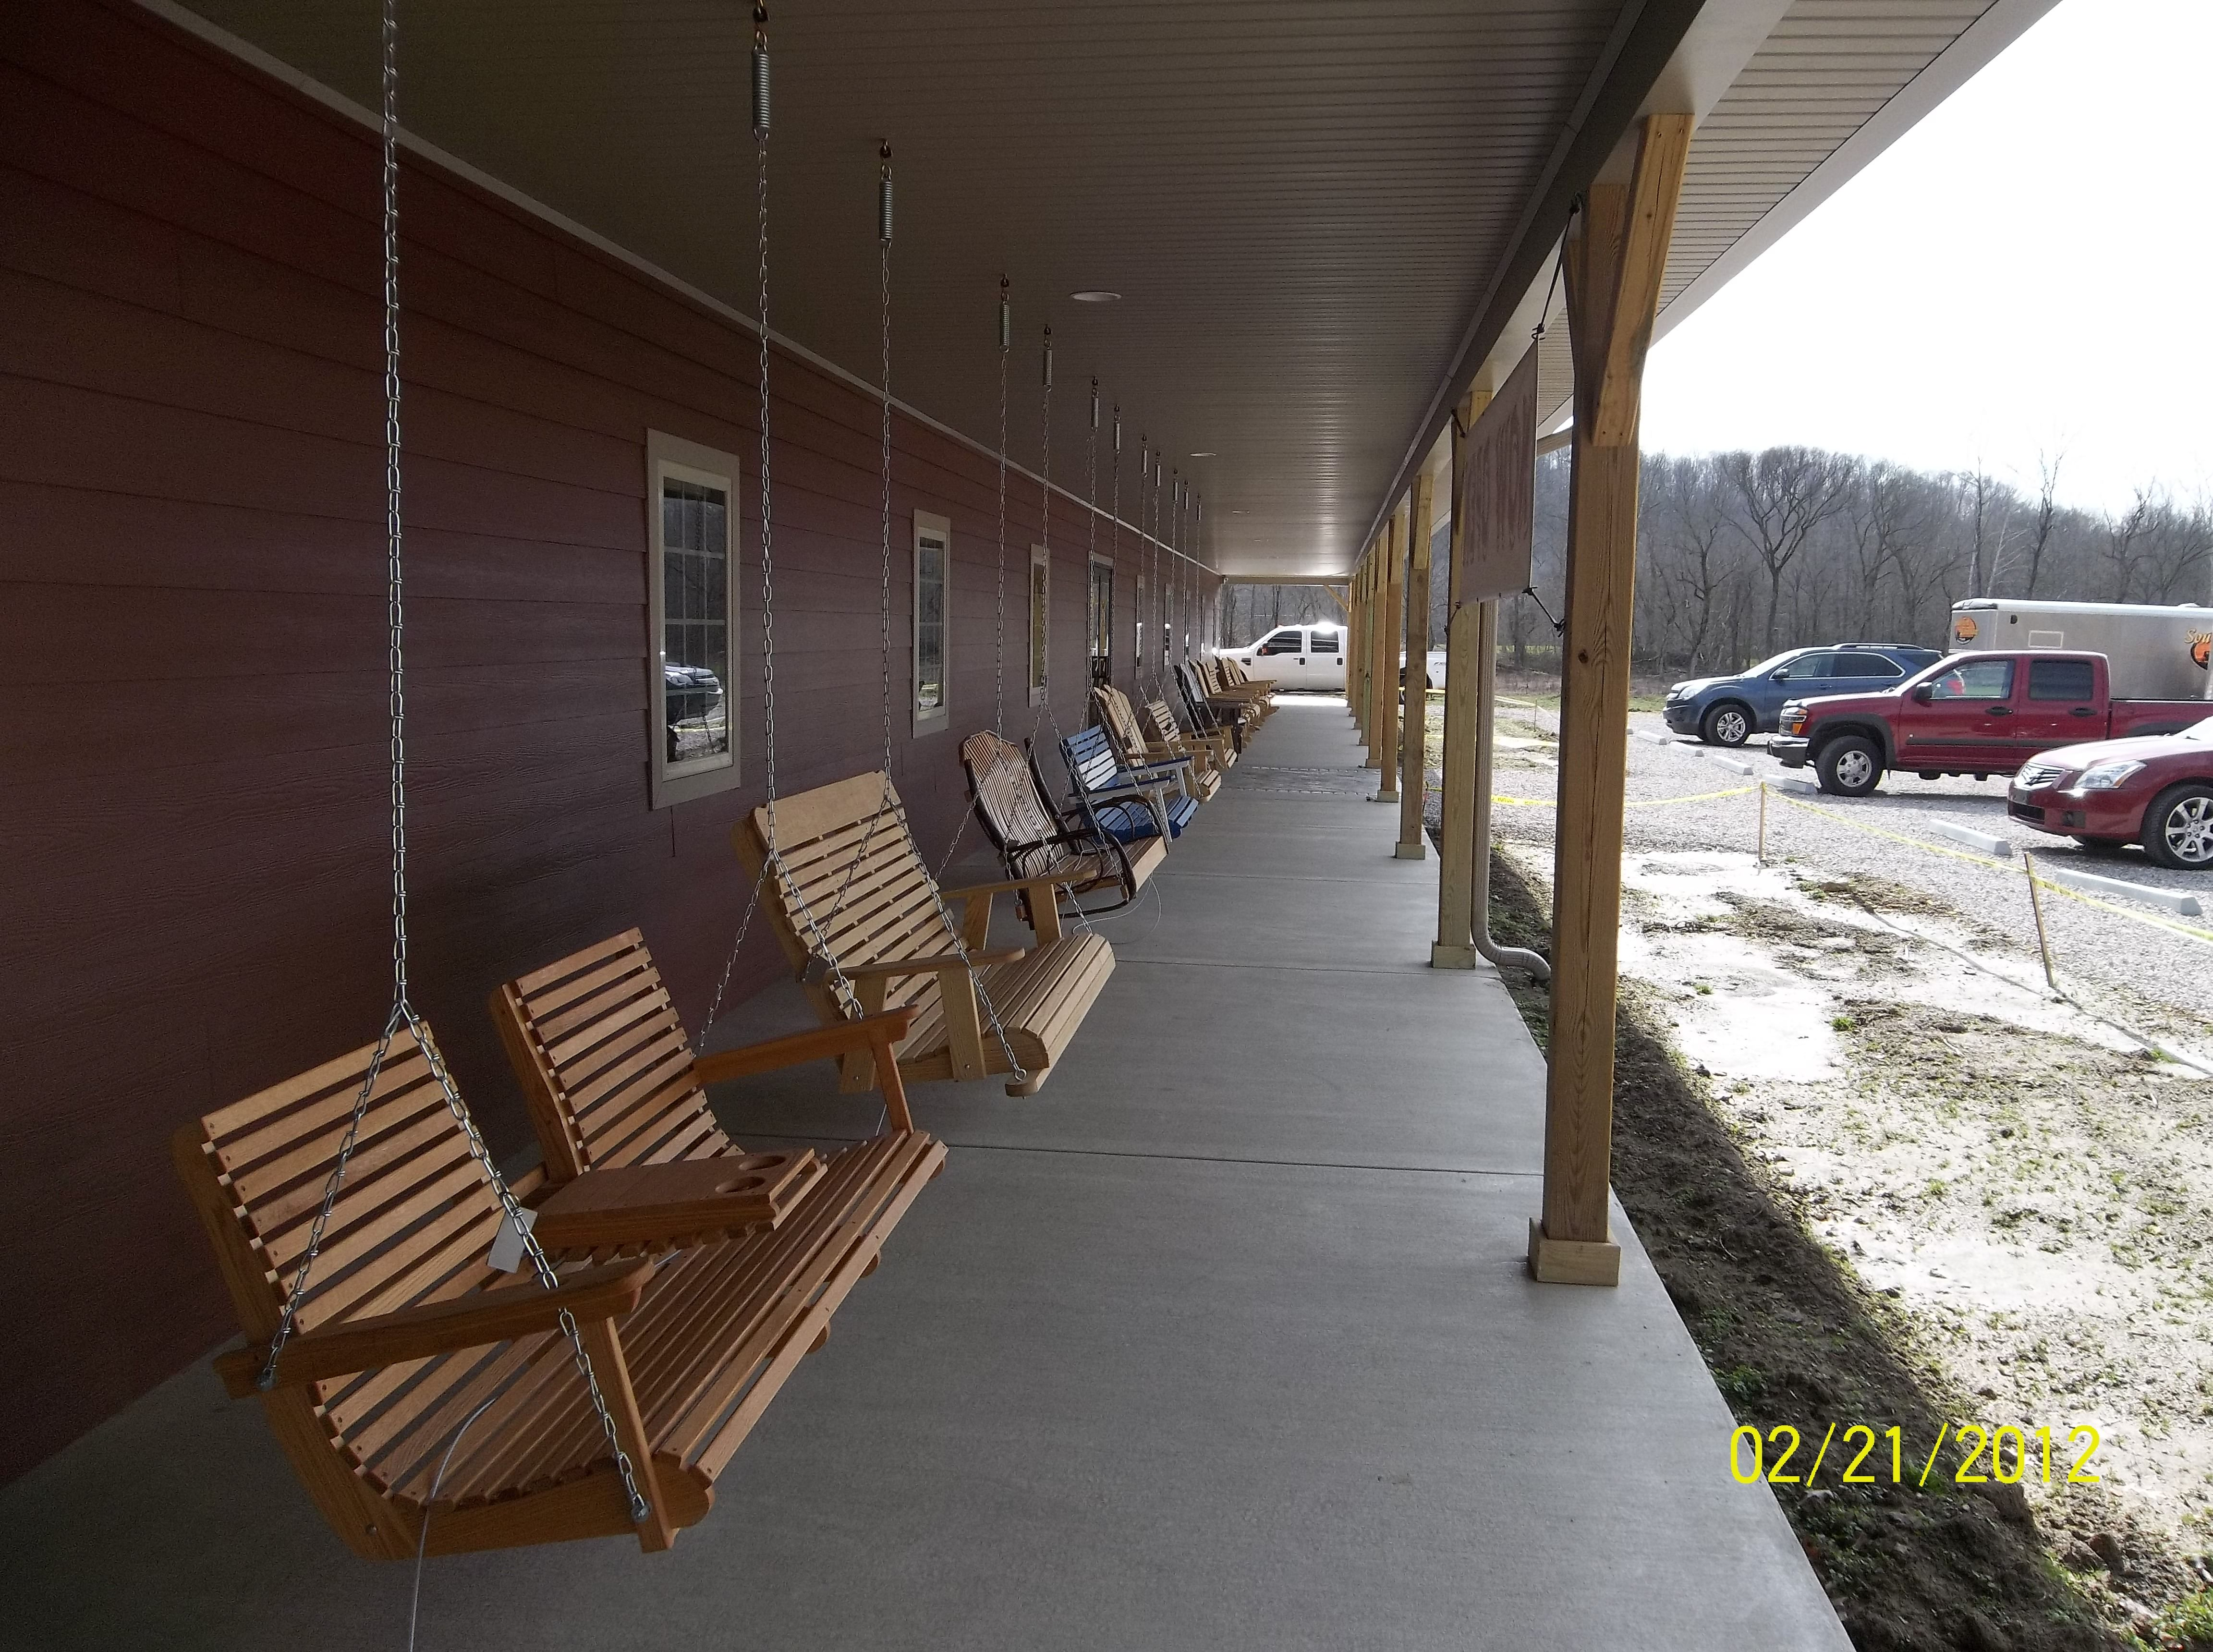 I Took This At A Amish Furniture Shop In Liberty Kentucky Amish